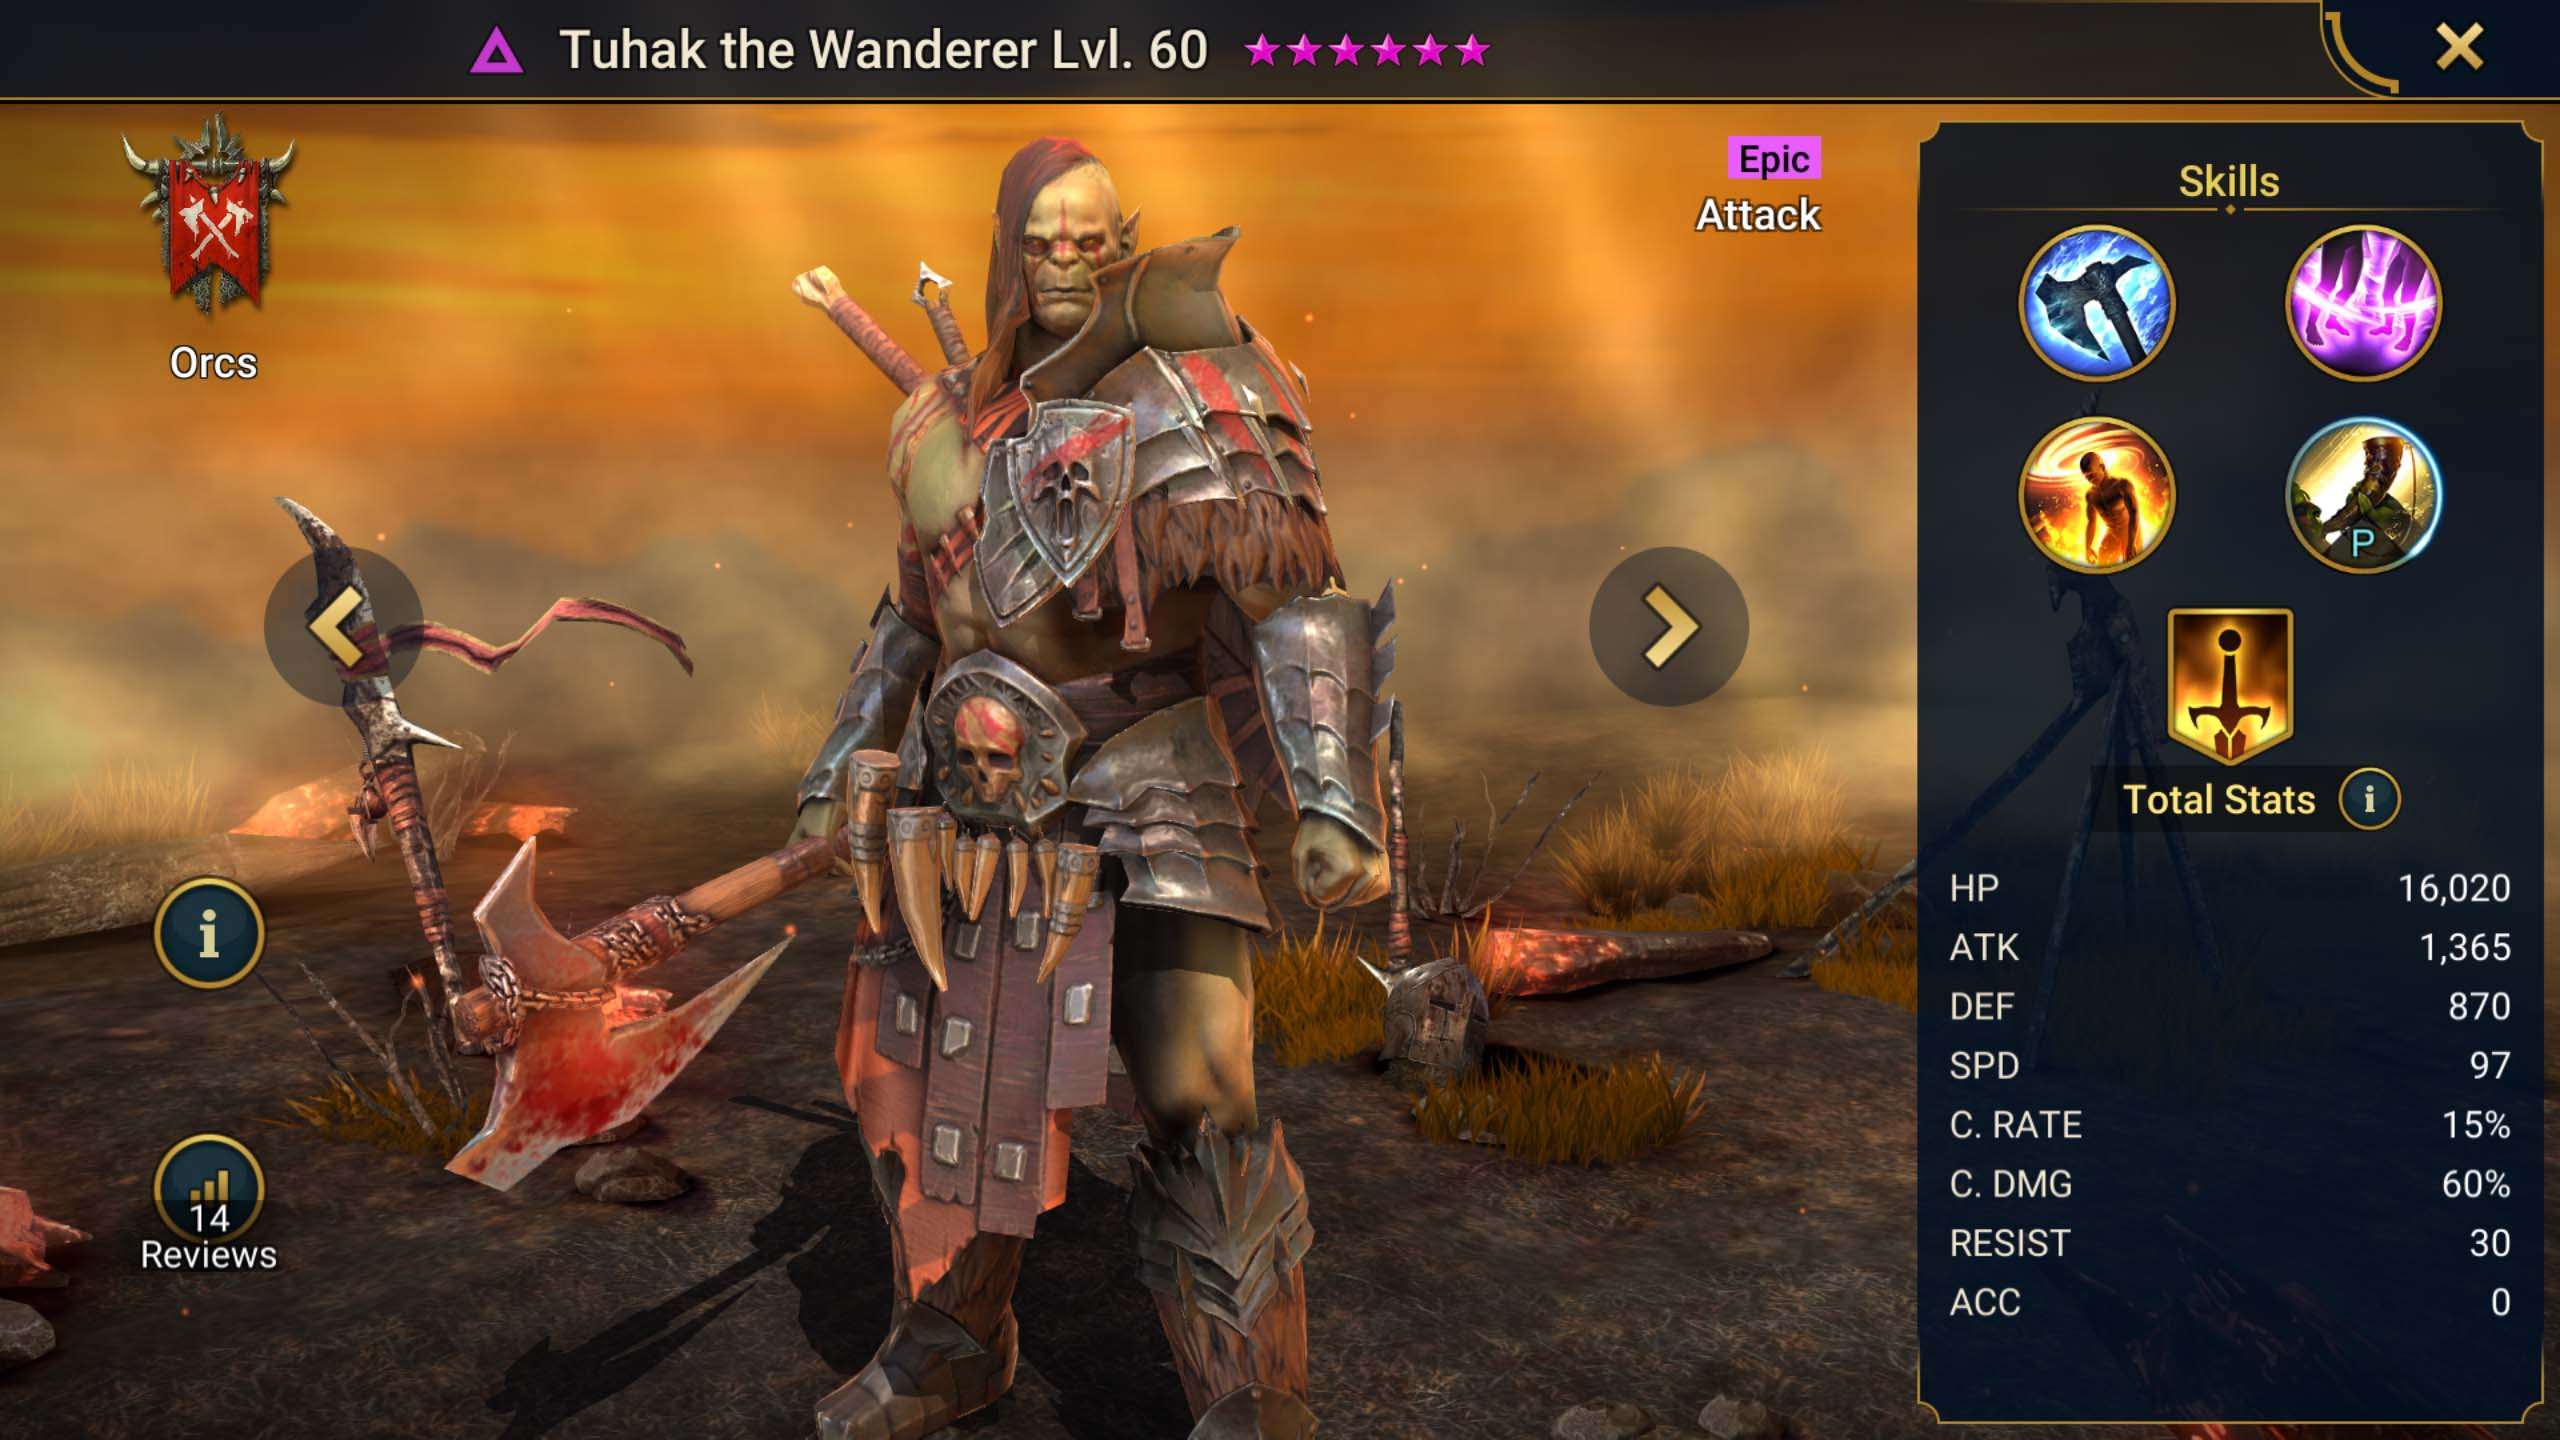 tuhak the wanderer